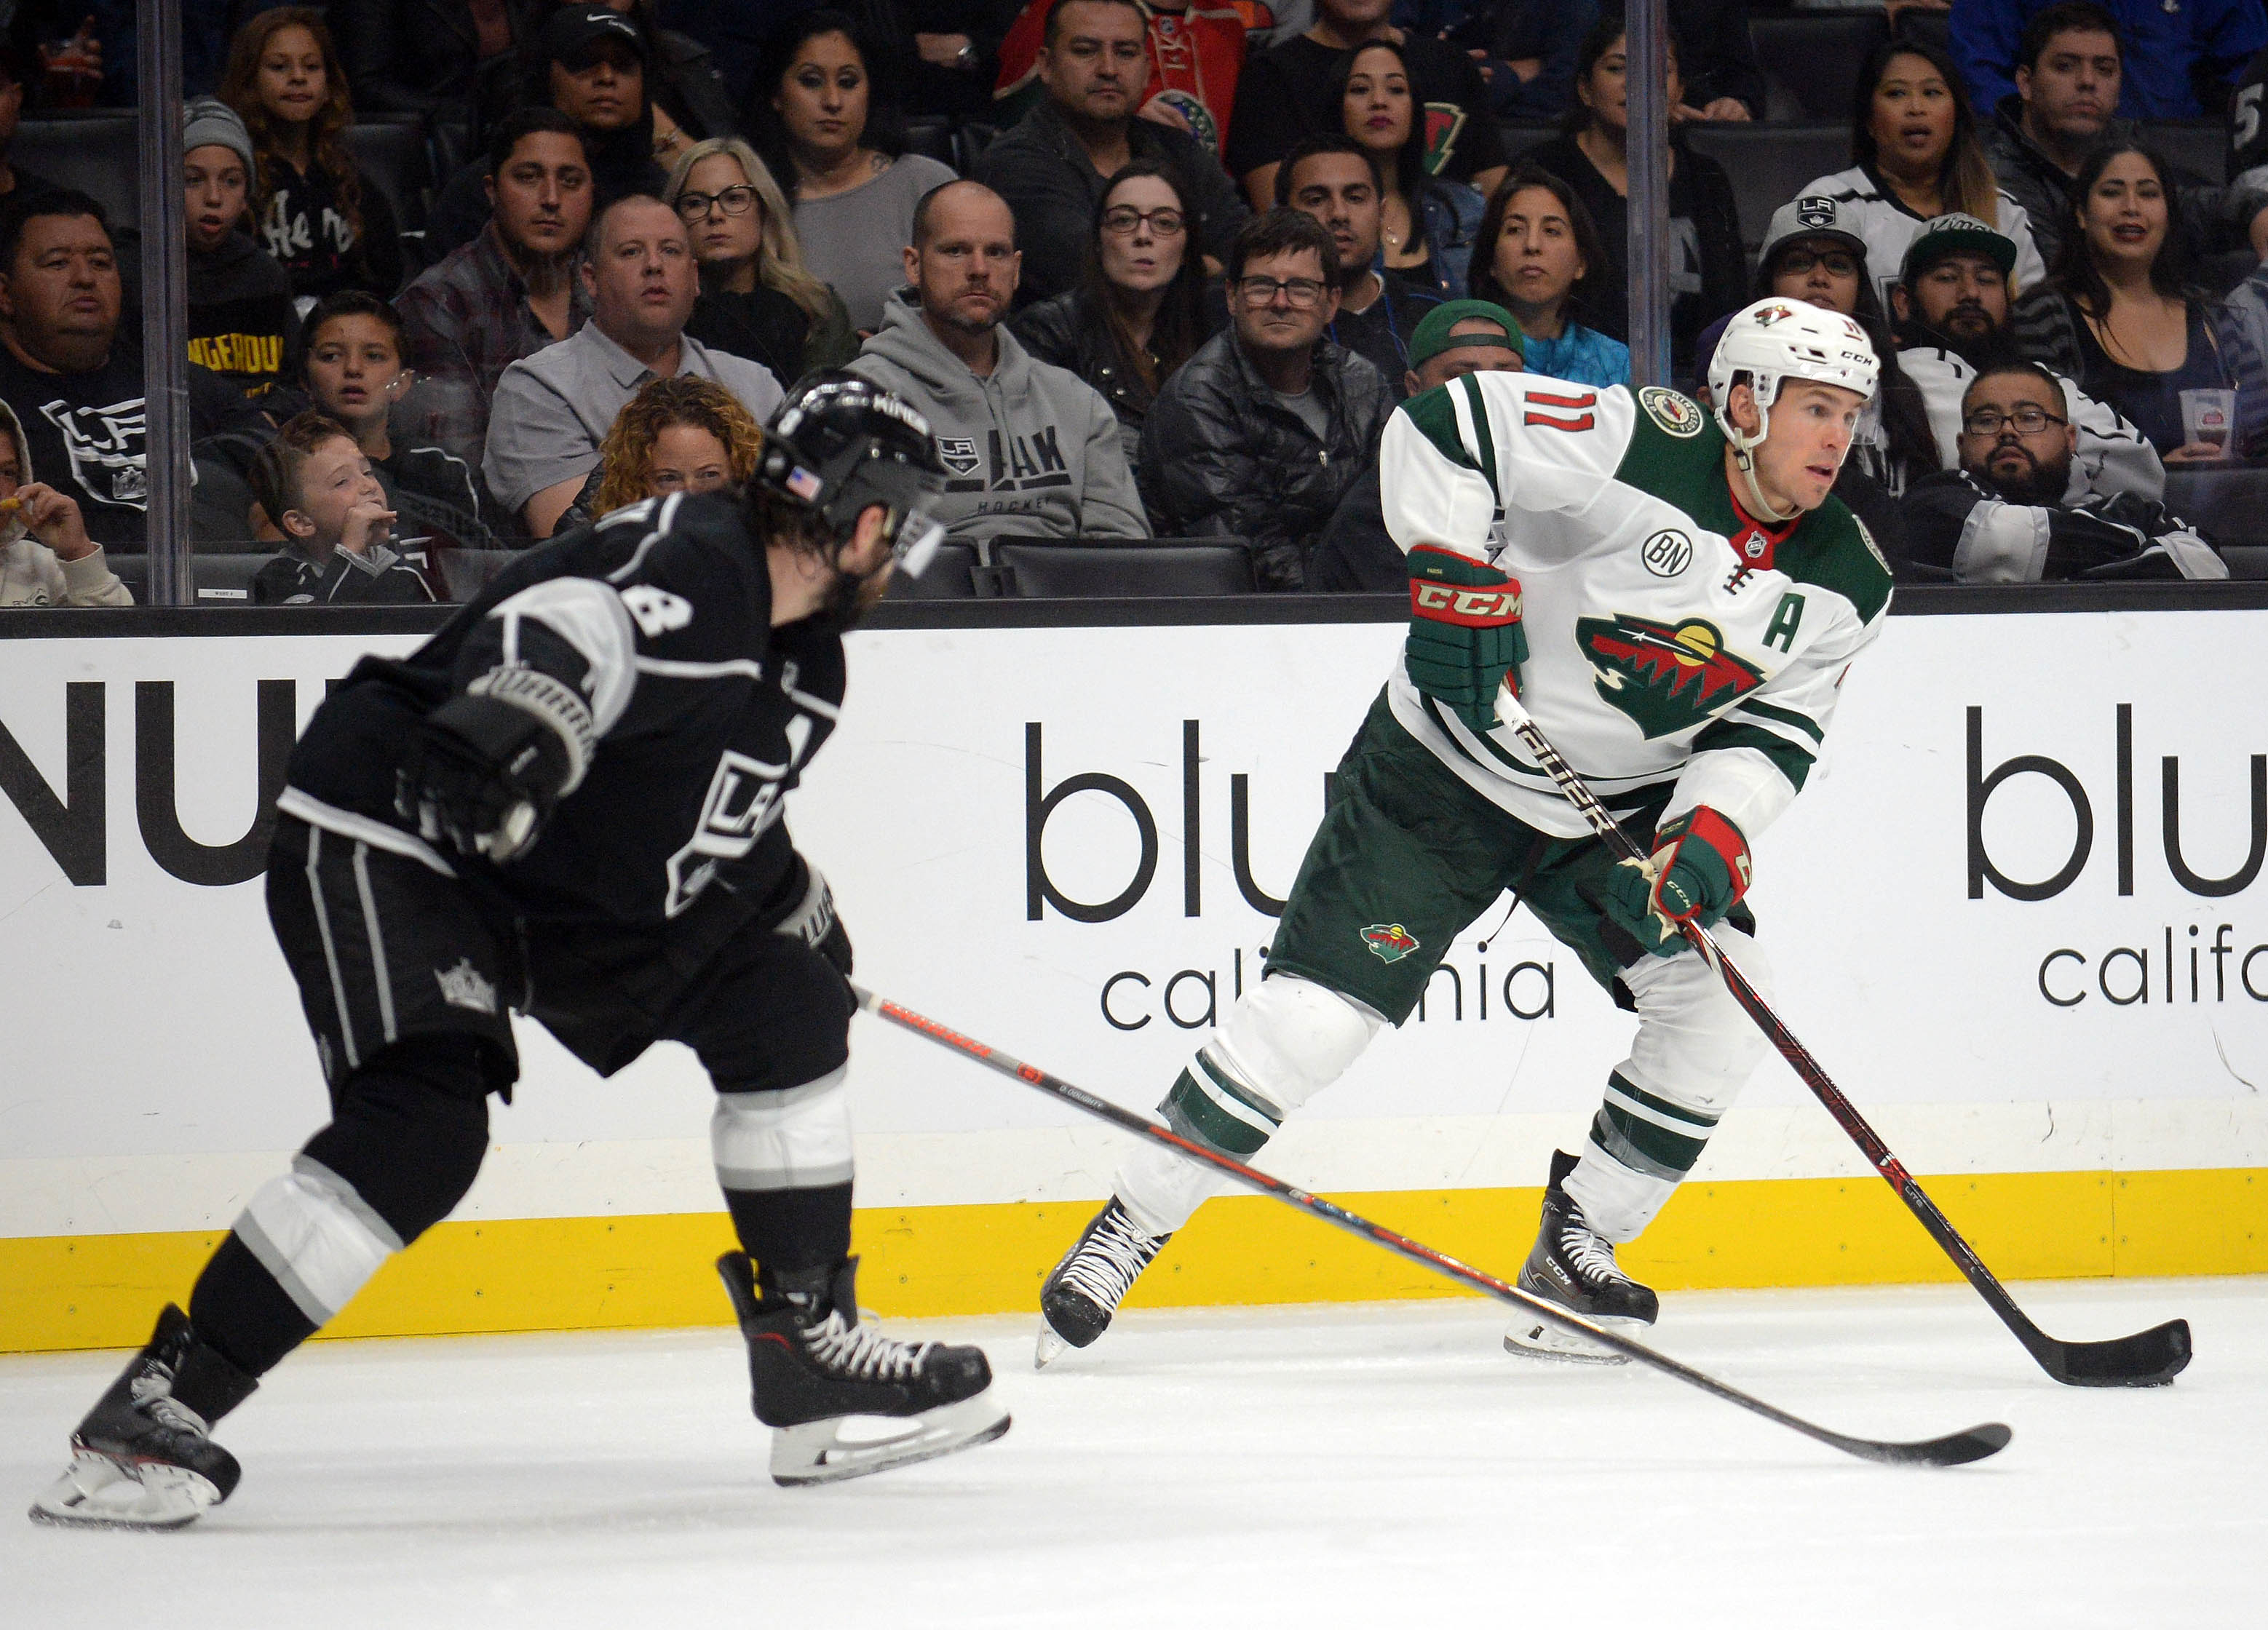 Game Preview: Minnesota Wild vs. Los Angeles Kings 1/15/19 @ 7:00PM CST at Xcel Energy Center